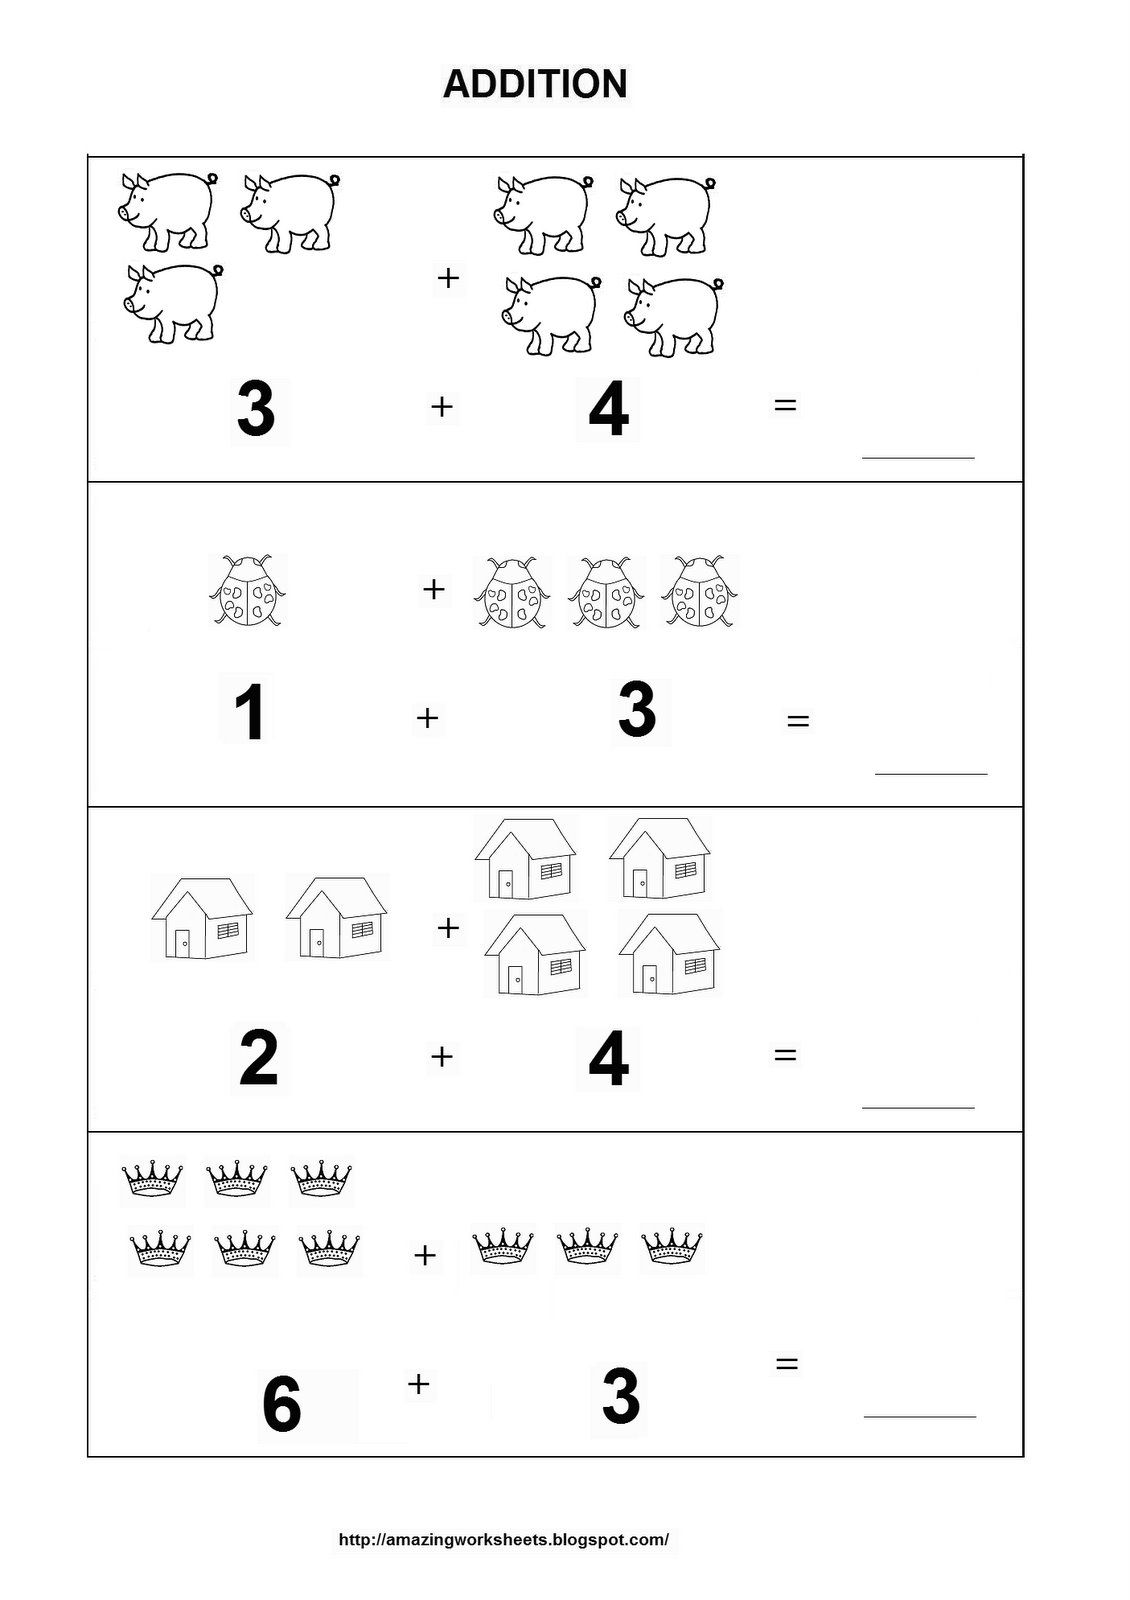 Printables Additions Worksheets f64bb7d8fe96a17f82504215b27eb25b jpg alpha pinterest addition worksheets and worksheets